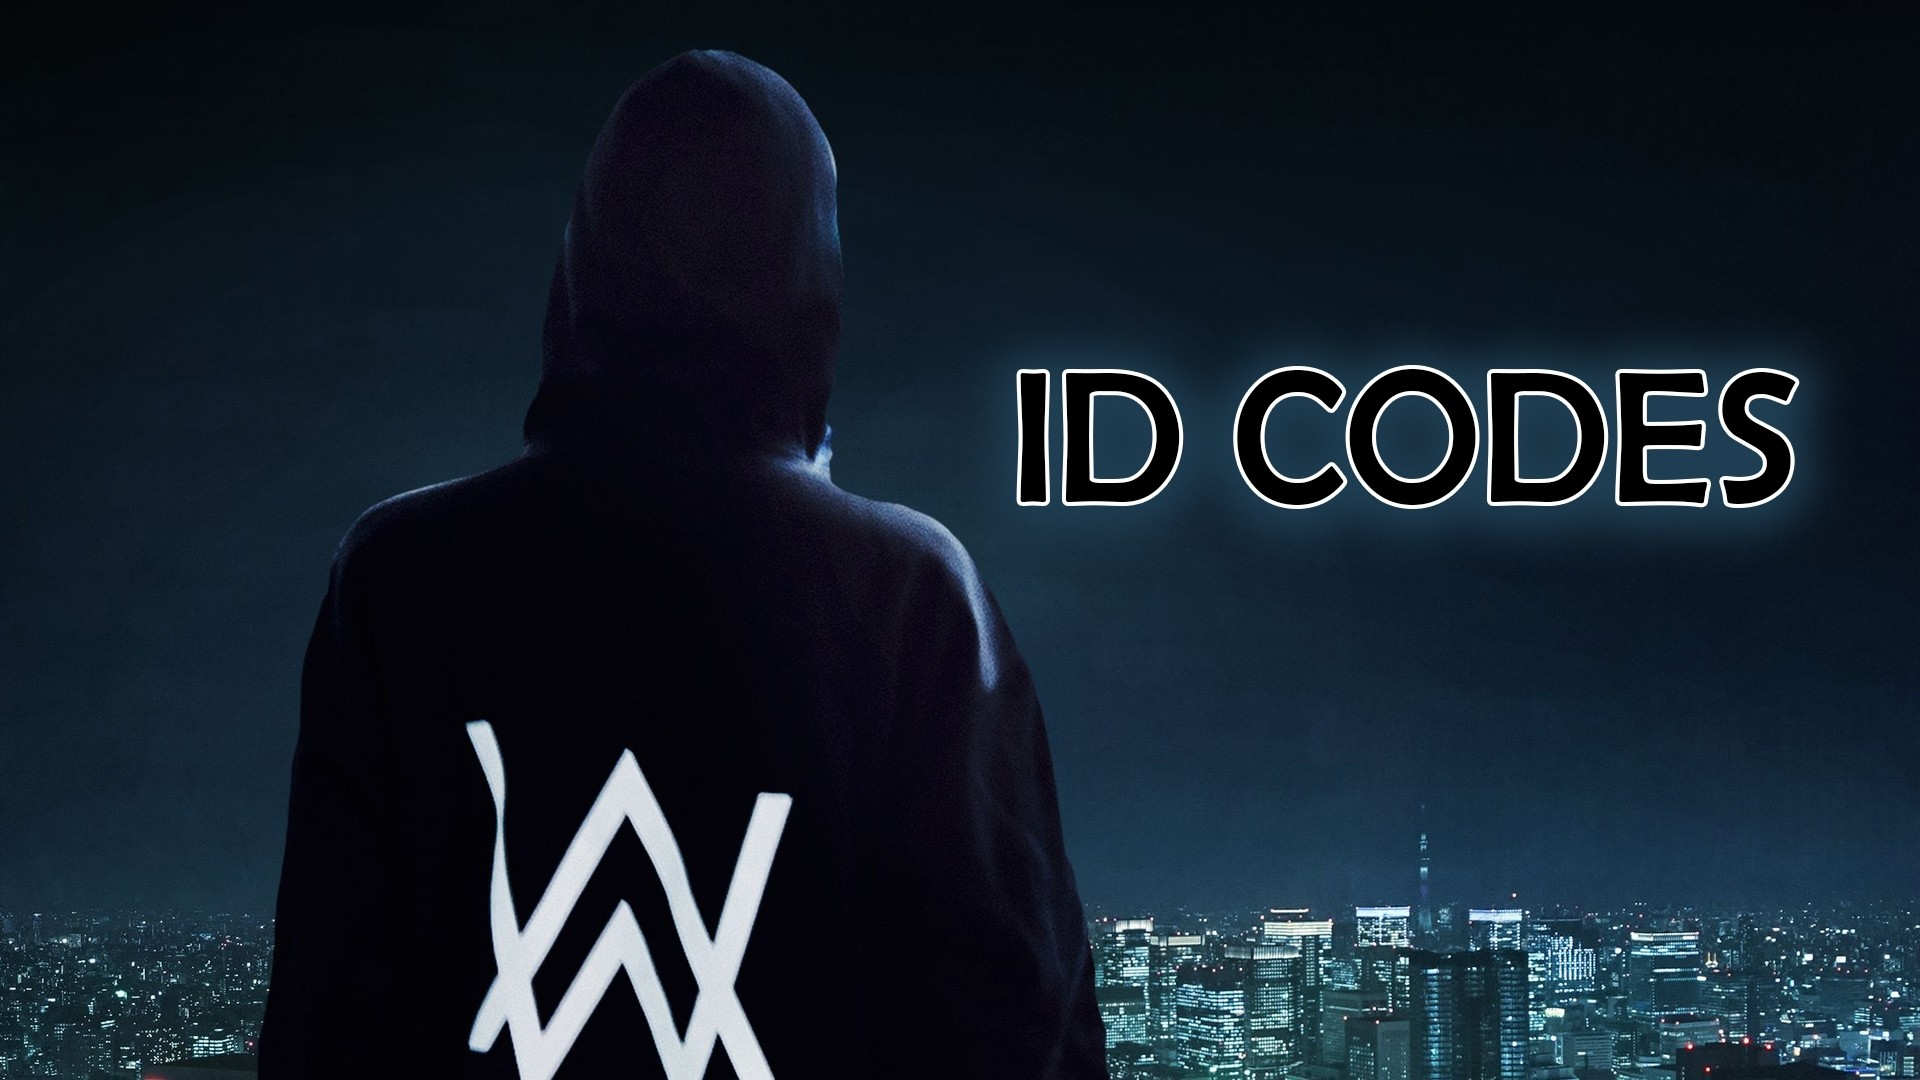 Alan Walker PC Wallpaper HD